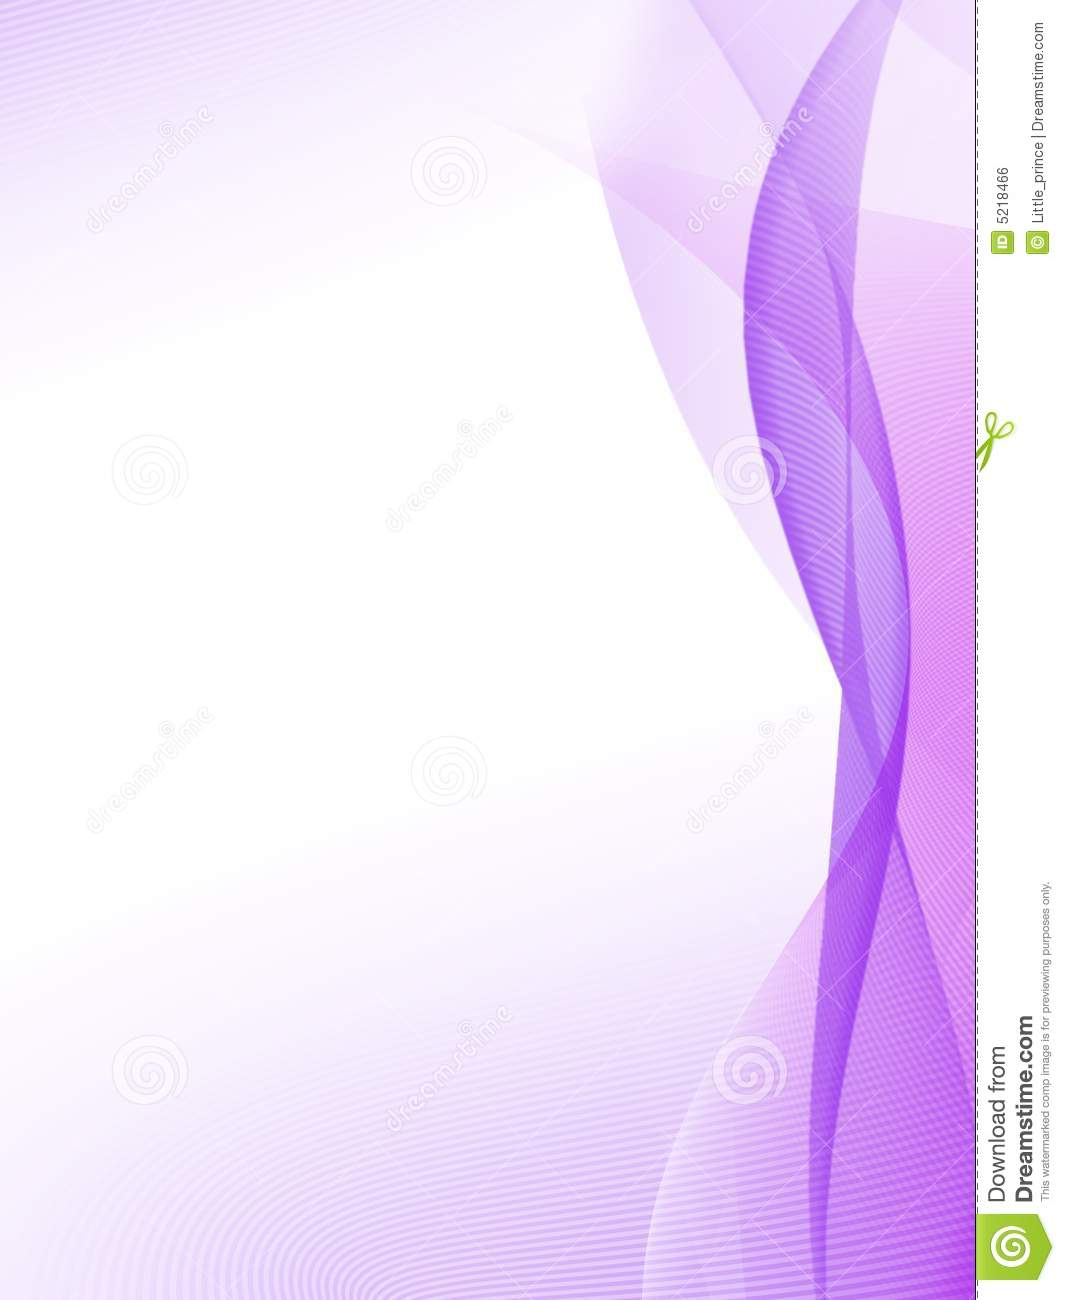 home design 3d gold video with Royalty Free Stock Image Purple Abstract Background Image5218466 on A 347 as well Royalty Free Stock Image Purple Abstract Background Image5218466 furthermore Shopping Cart Vector Download further 32 Golden Heart as well A 505863.